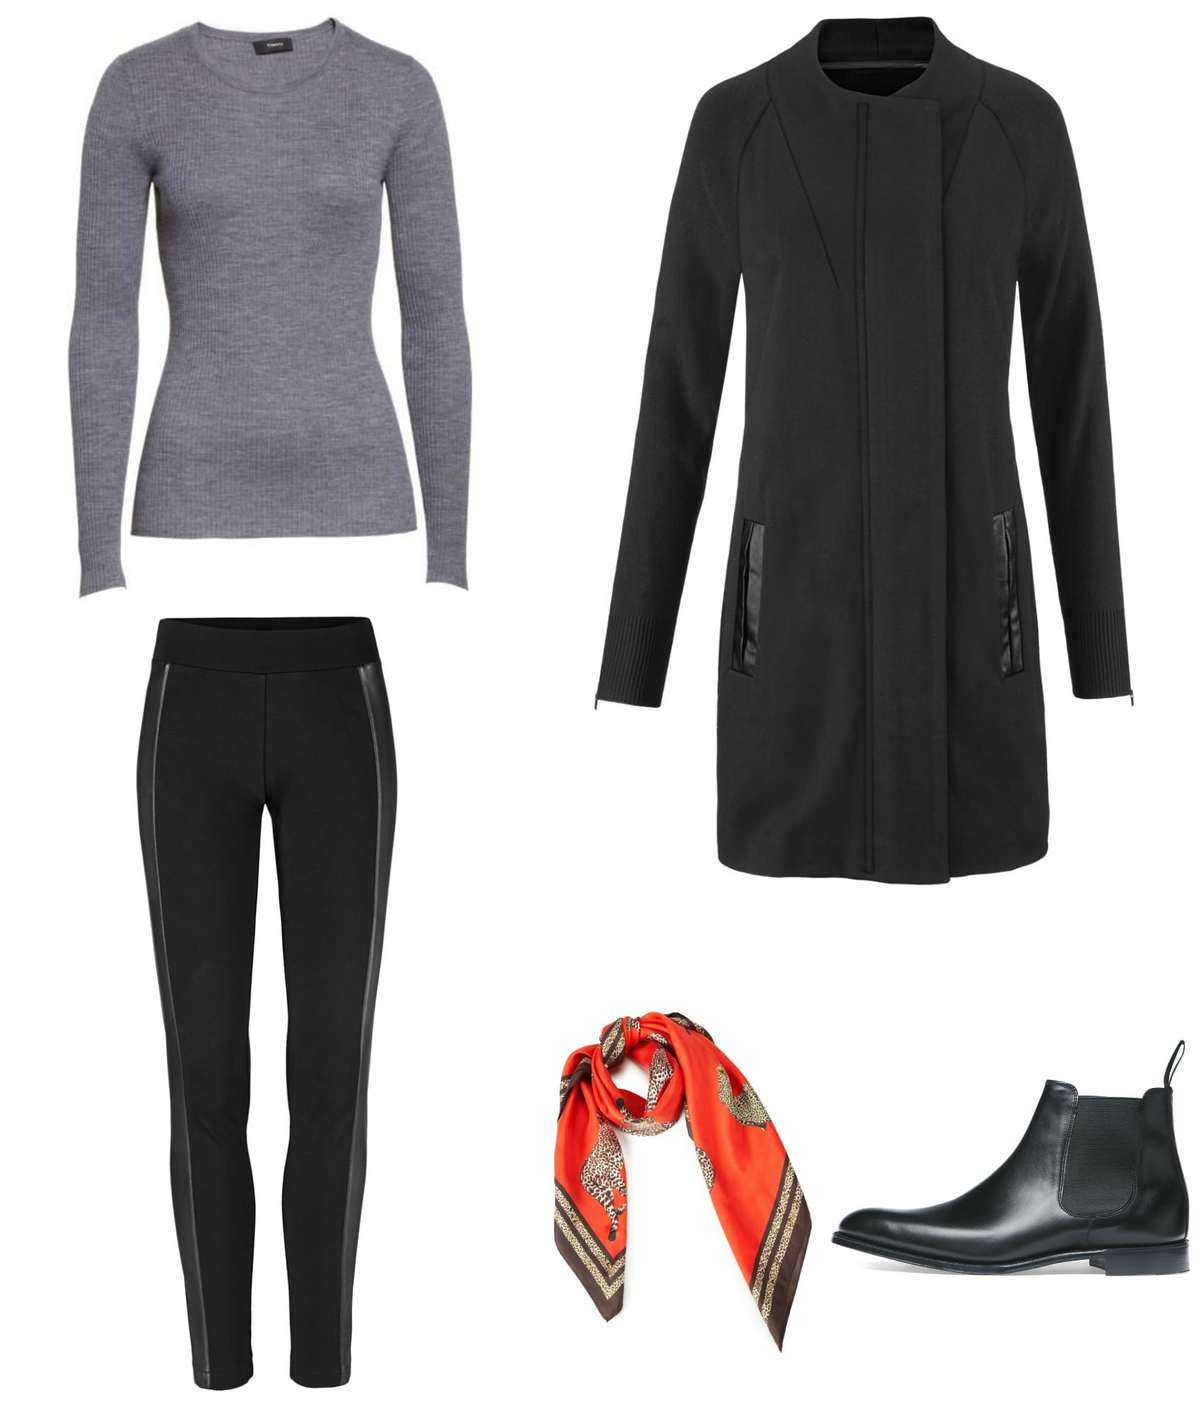 the cabi Tailor Coat and Bexley Legging styled with a merino crewneck, Chelsea boots, and the Deidre scarf for a pop of color